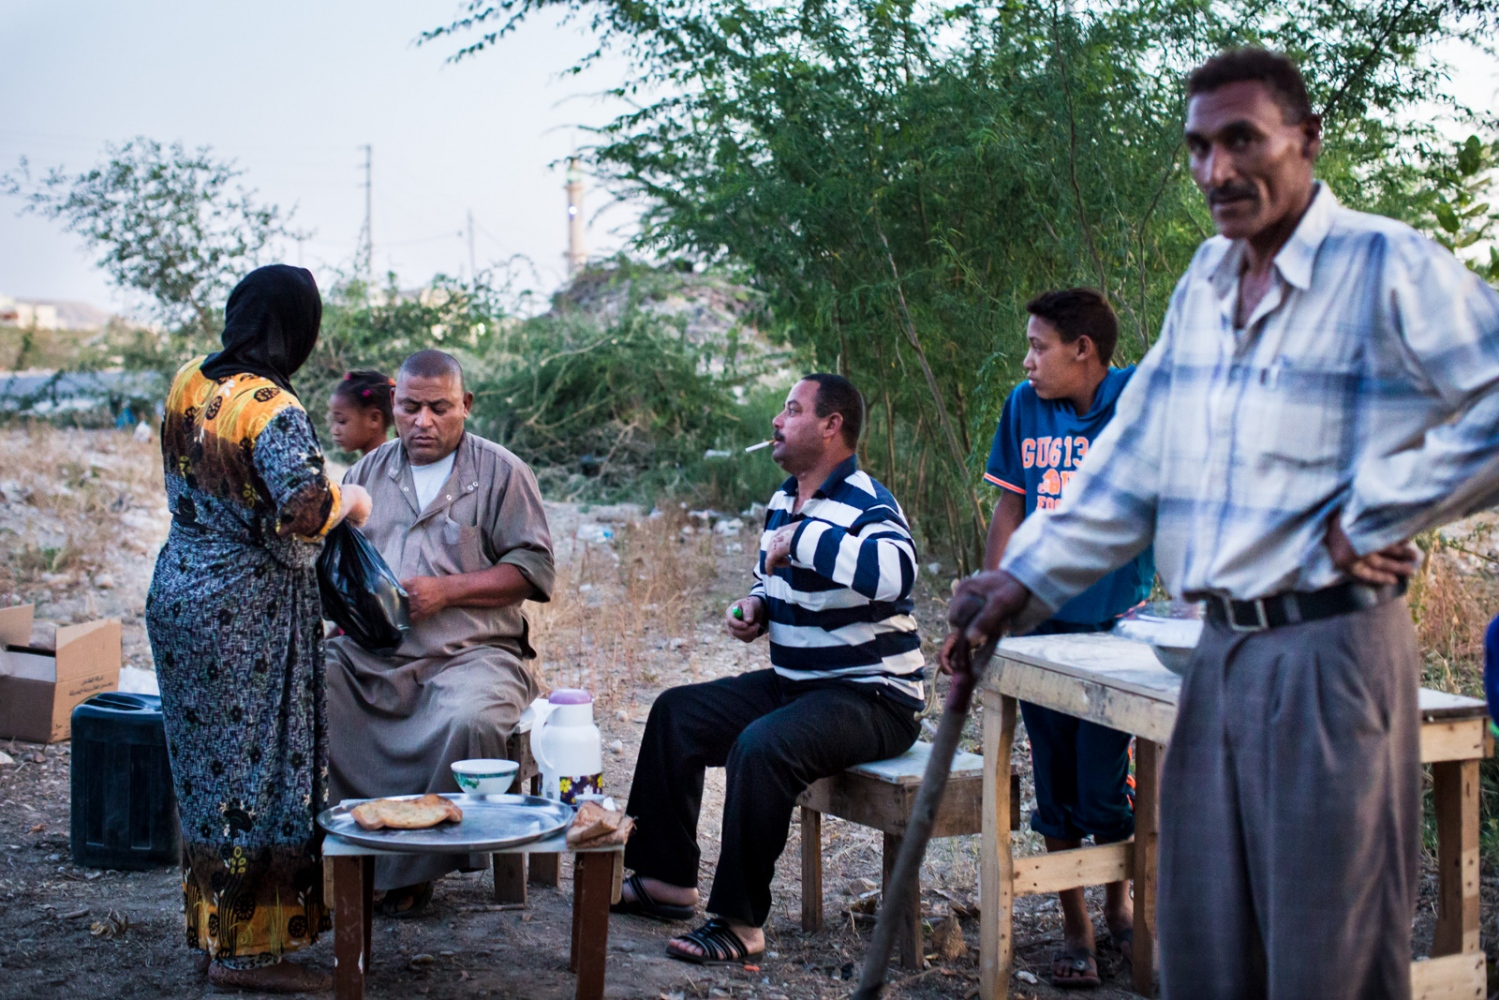 Residents of Ghor Safi sit together and talk at dusk, baking bread on an outdoor oven.